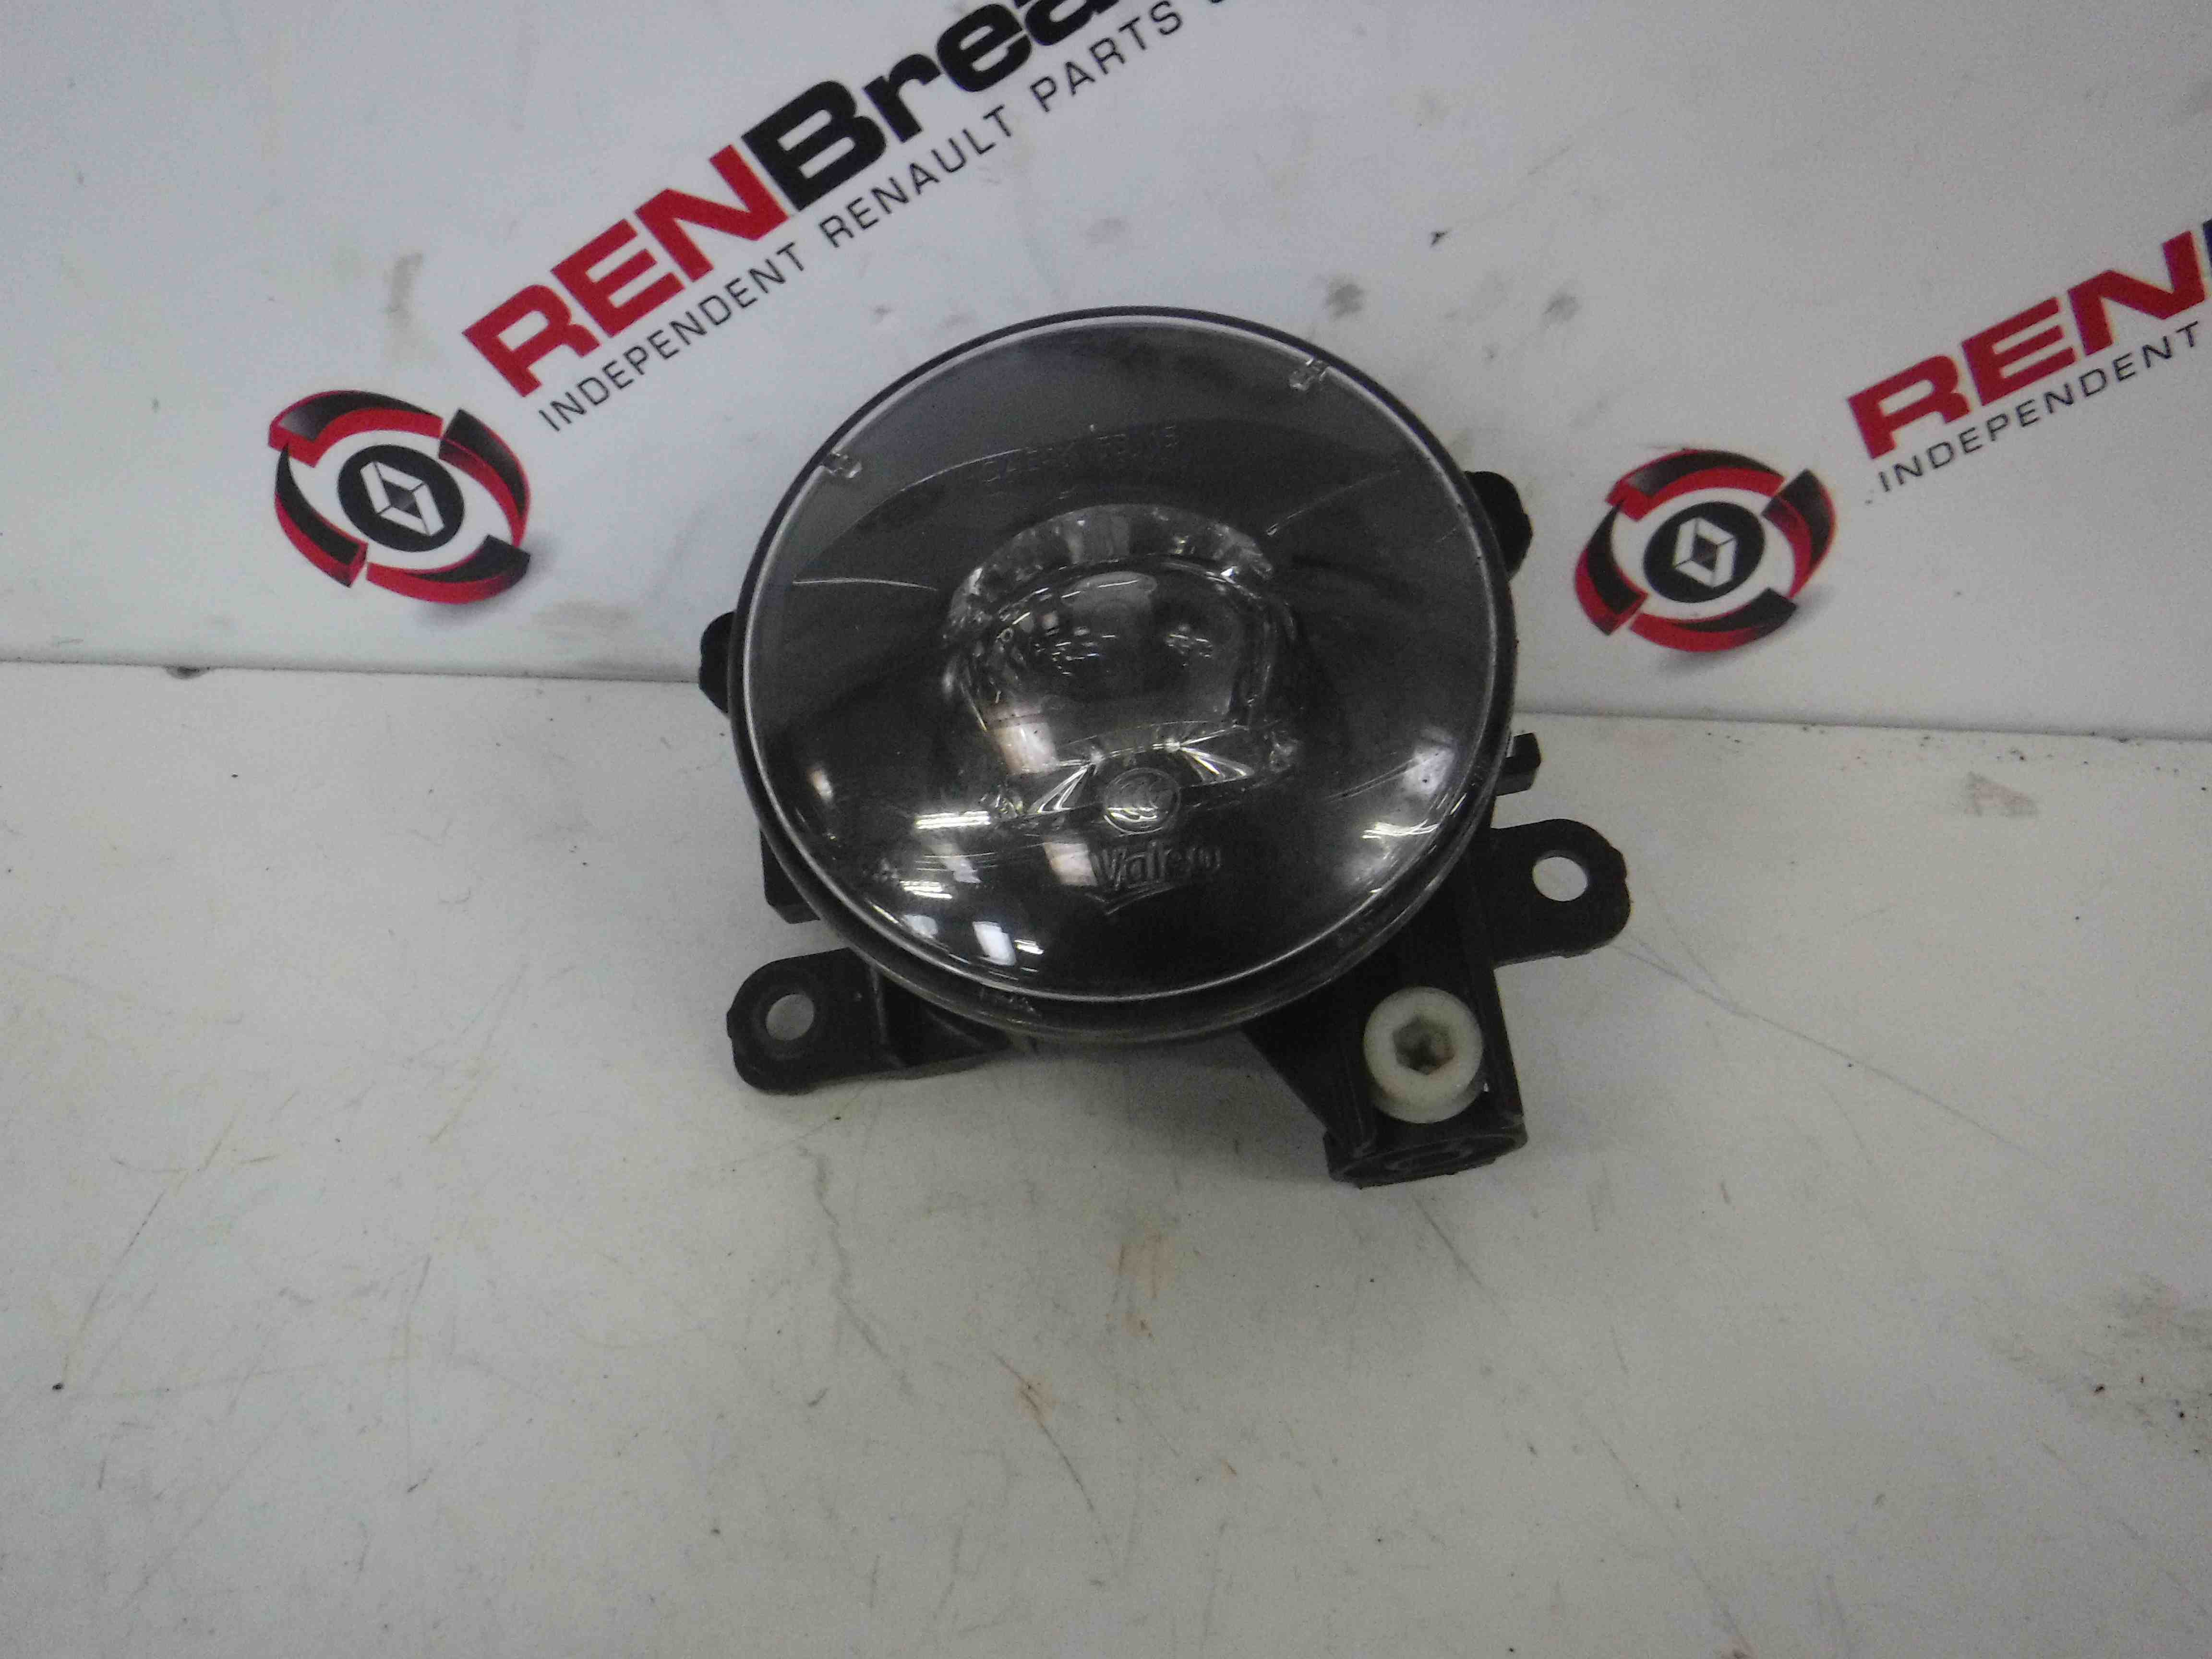 Renault Clio MK4 2017-2018 Drivers OSF Front Fog Light Black Backing 261507170R